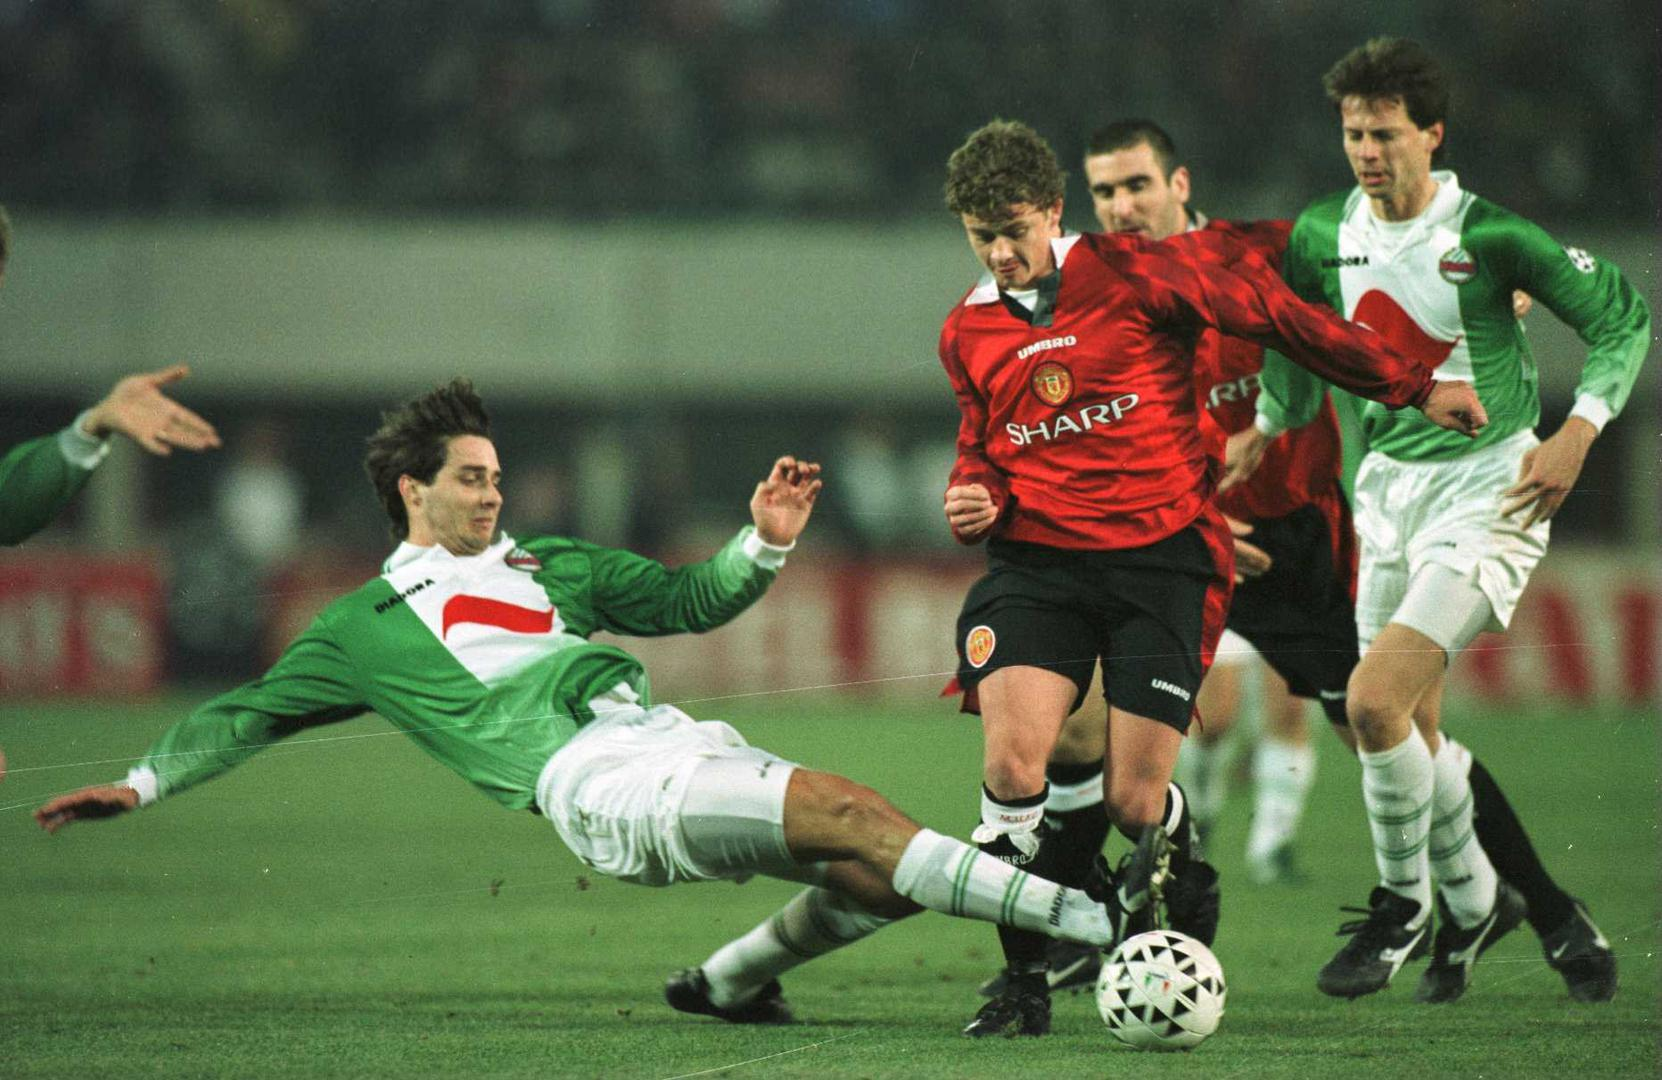 Ole Gunnar Solskjaer is tackled during a Rapid Vienna match